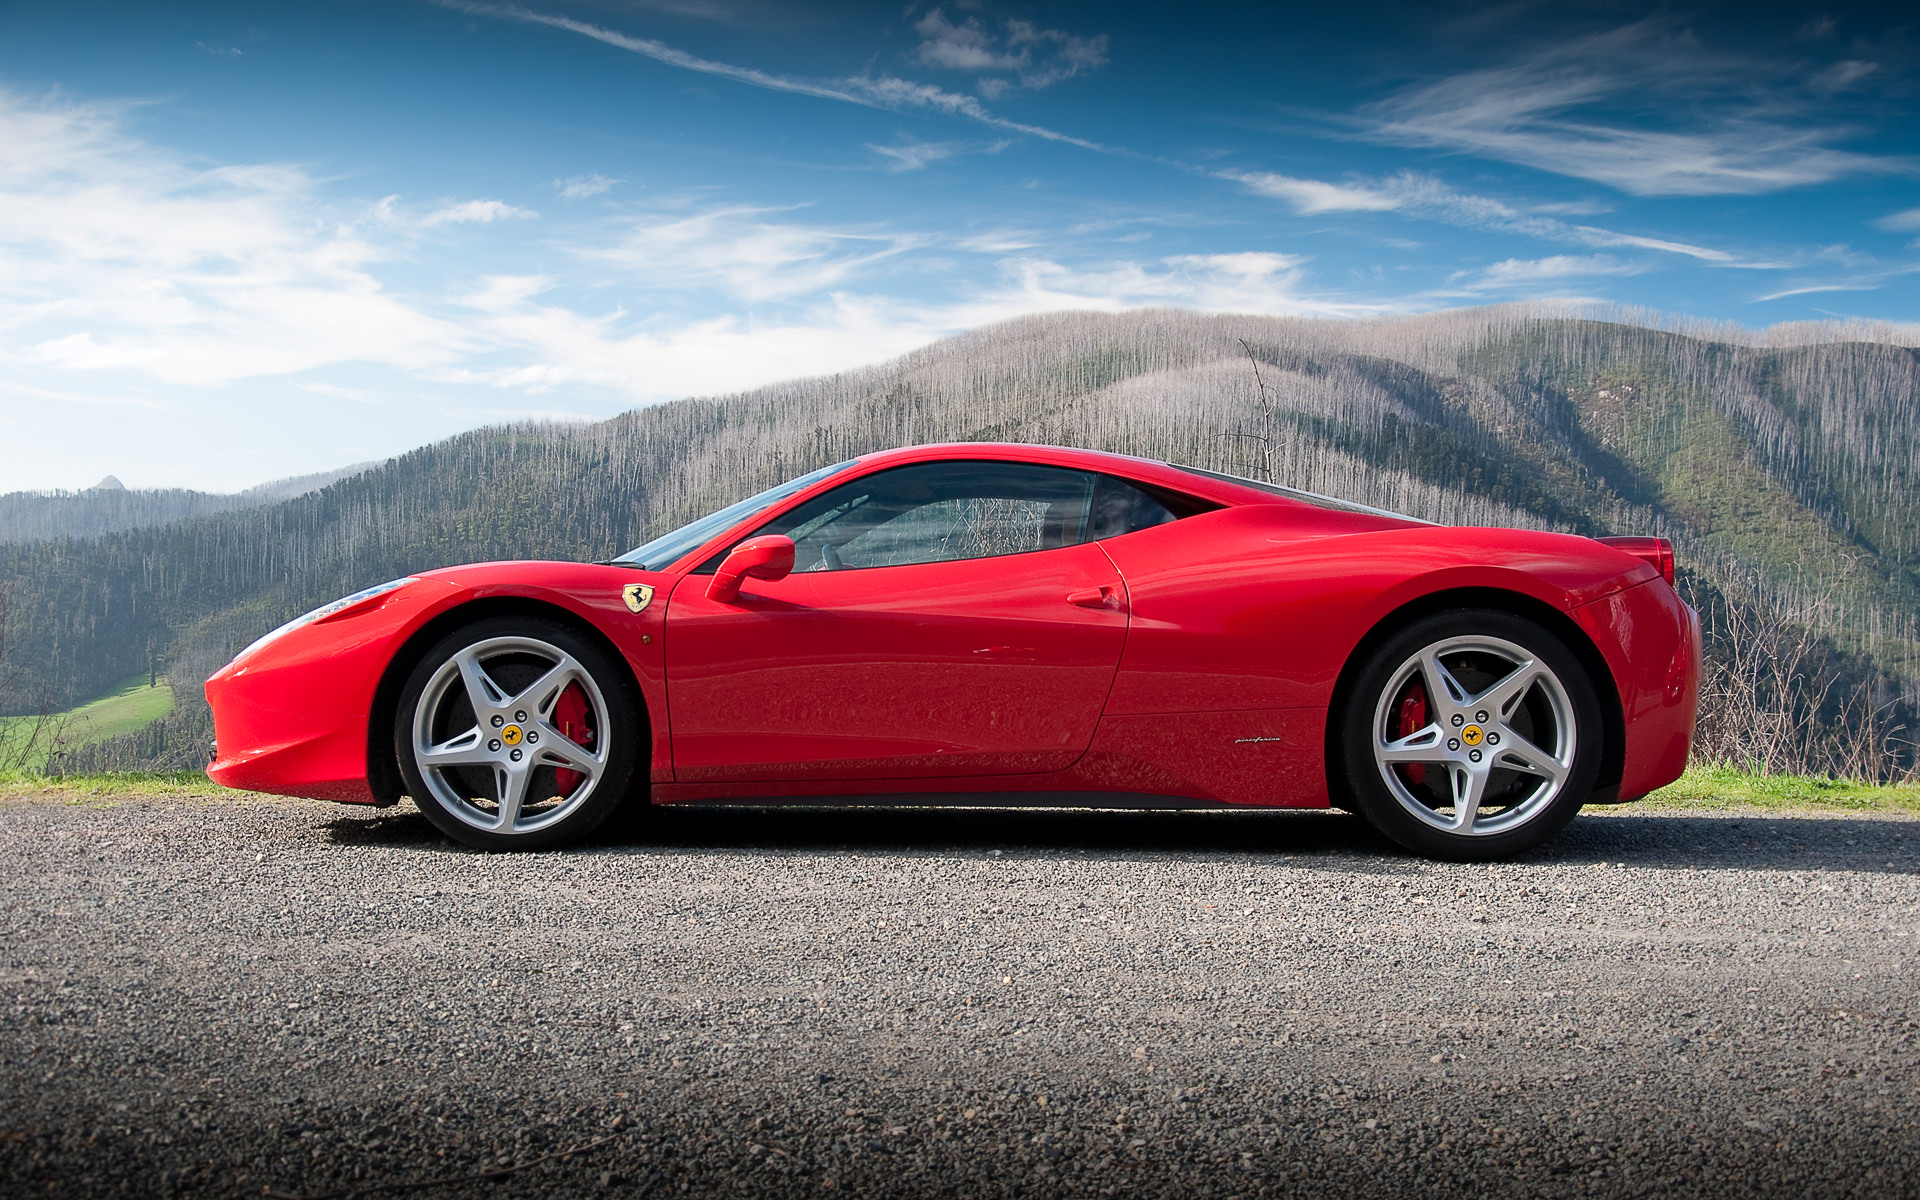 Drive the new Ferrari 458 Italia